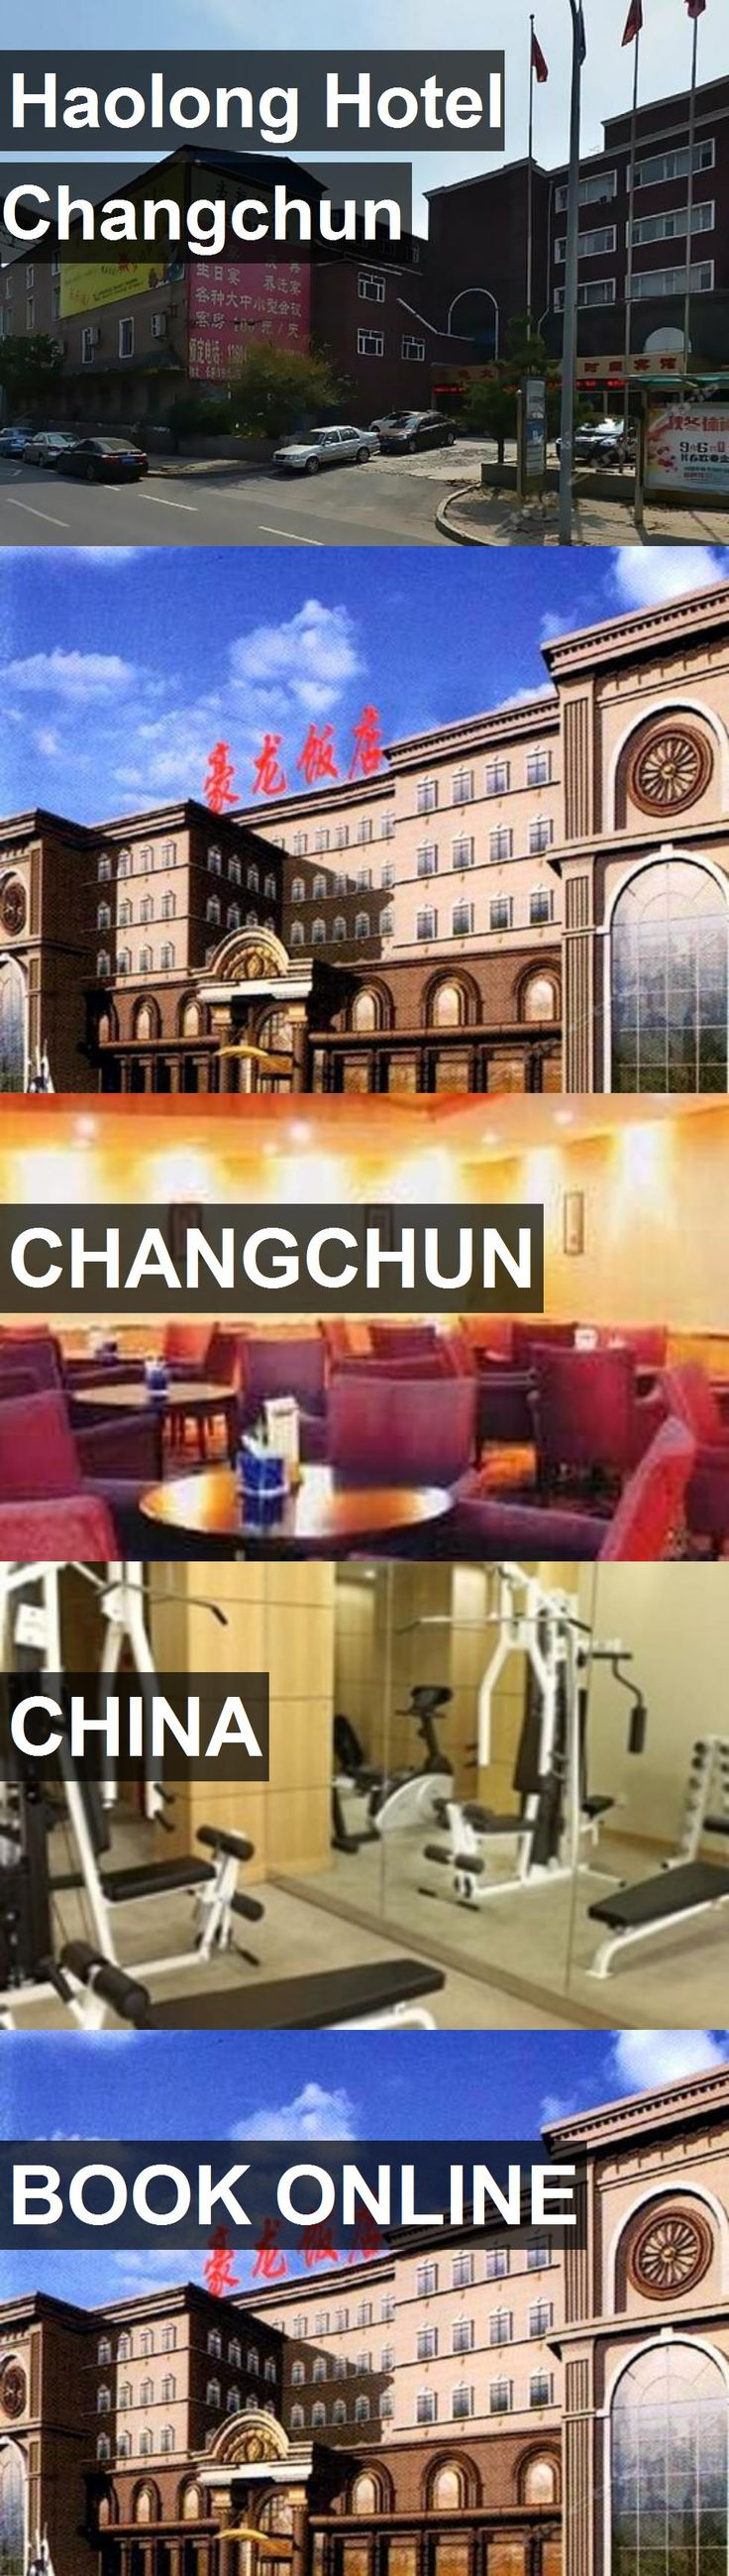 Haolong Hotel Changchun in Changchun, China. For more information, photos, reviews and best prices please follow the link. #China #Changchun #travel #vacation #hotel